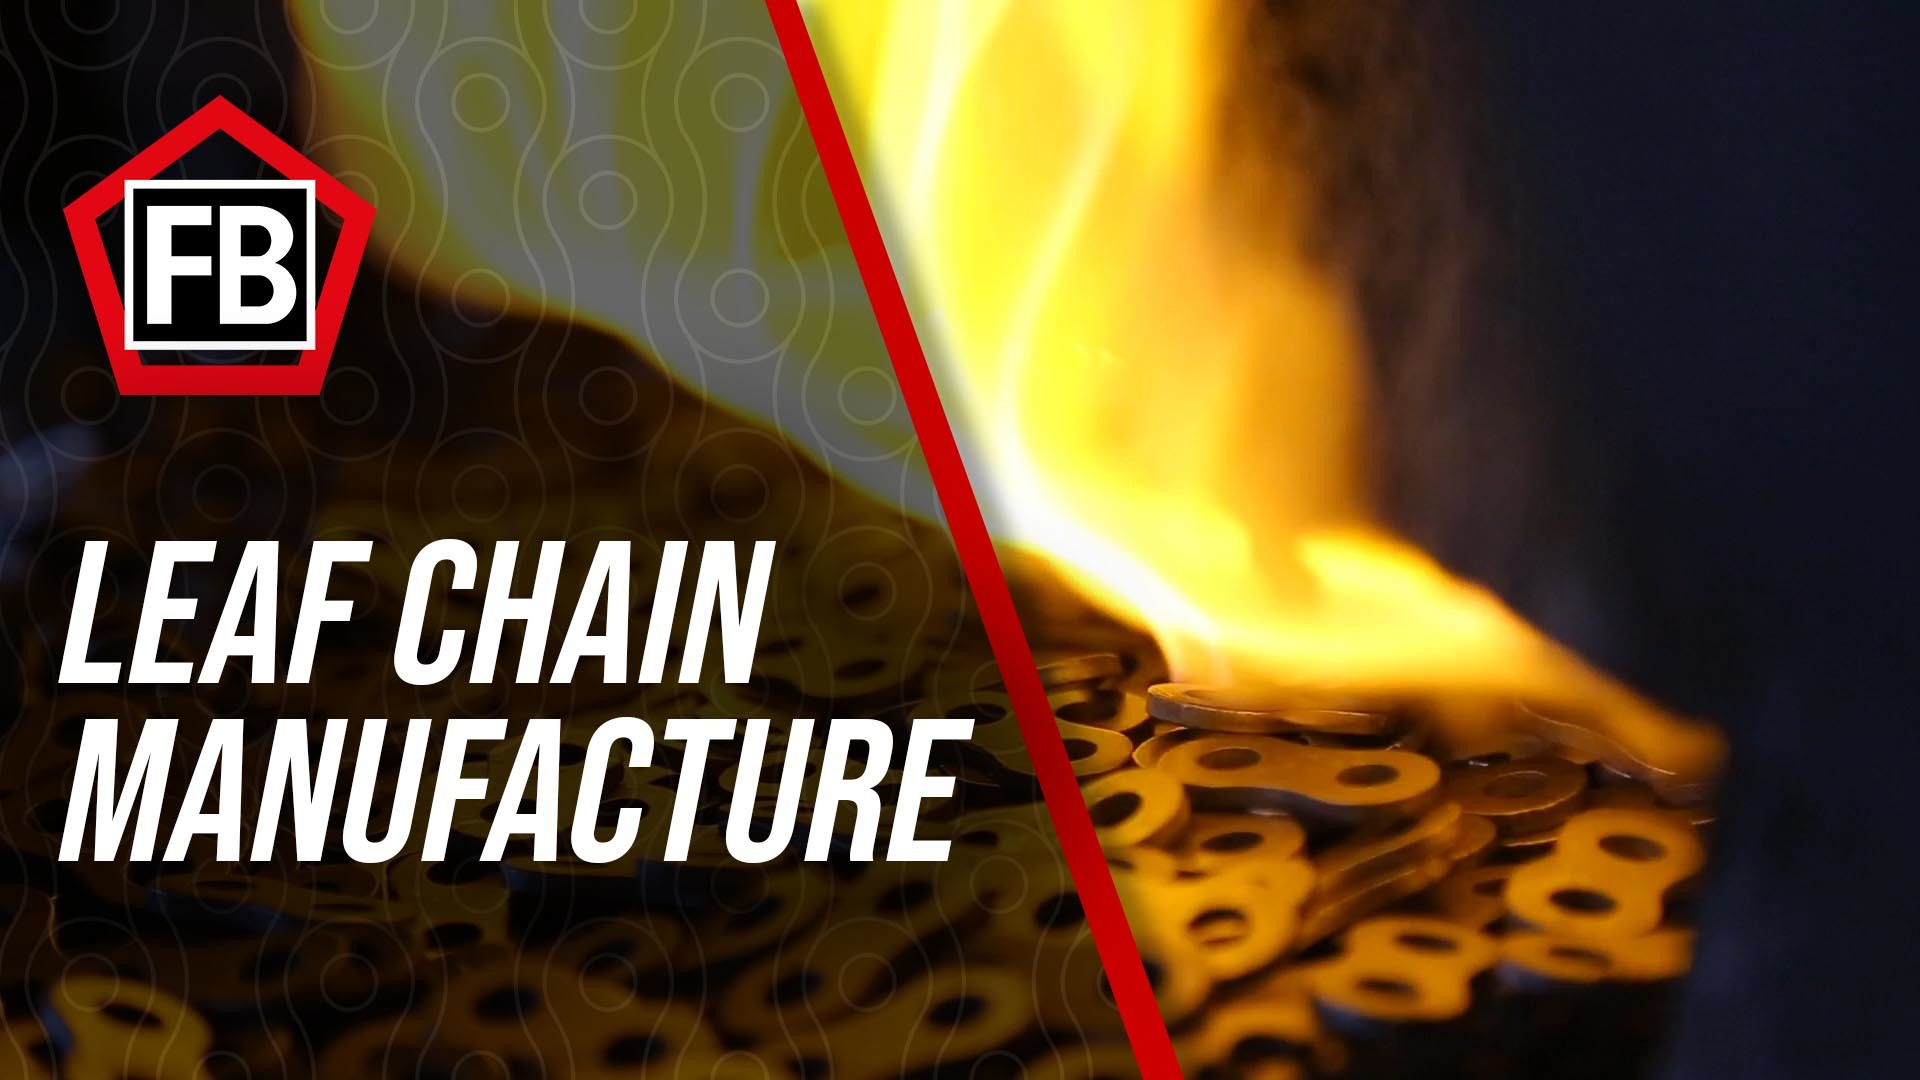 FBC Leaf Chain Manufacture 2.1